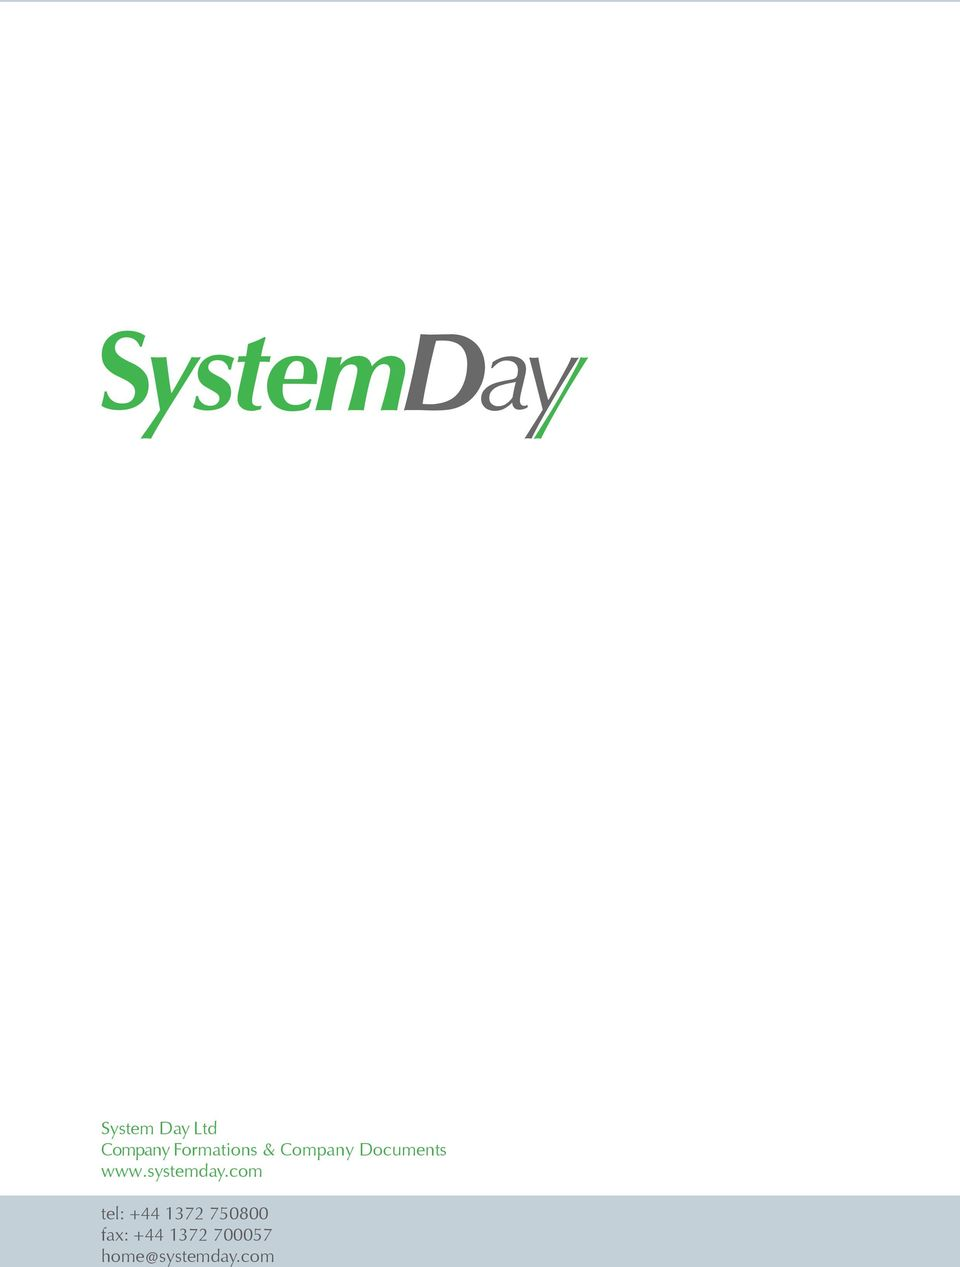 Company Documents www.systemday.